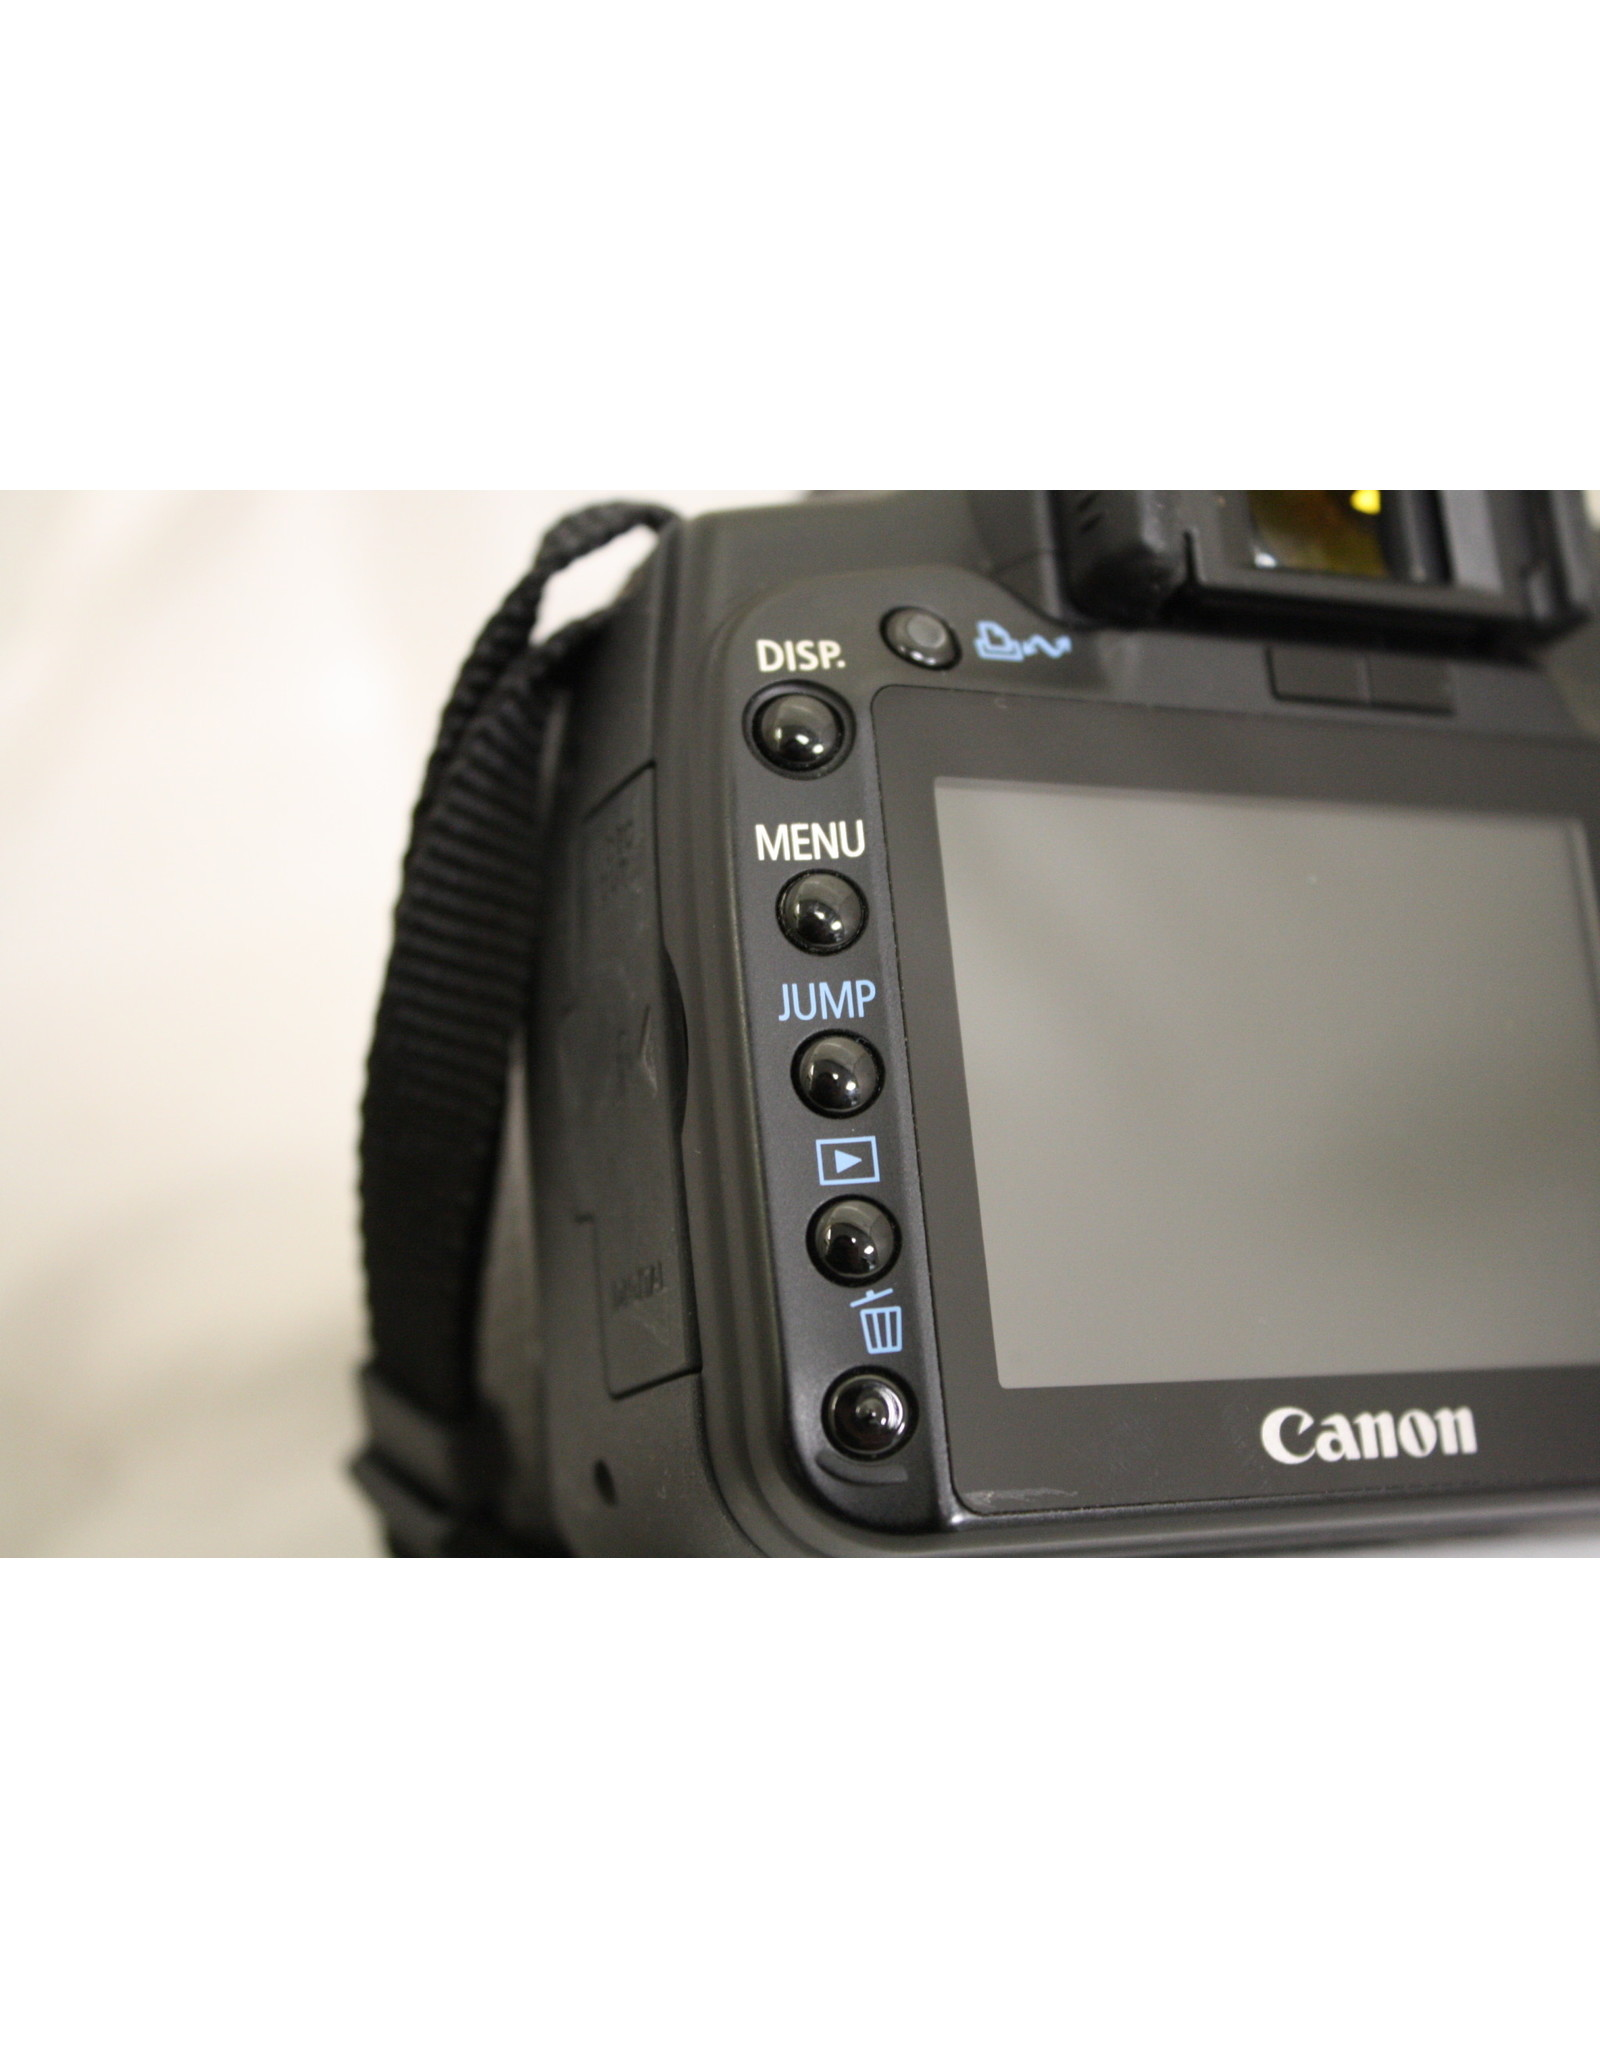 Canon Digital Rebel XTi with 28-90mm w/ charger, 2 batteries